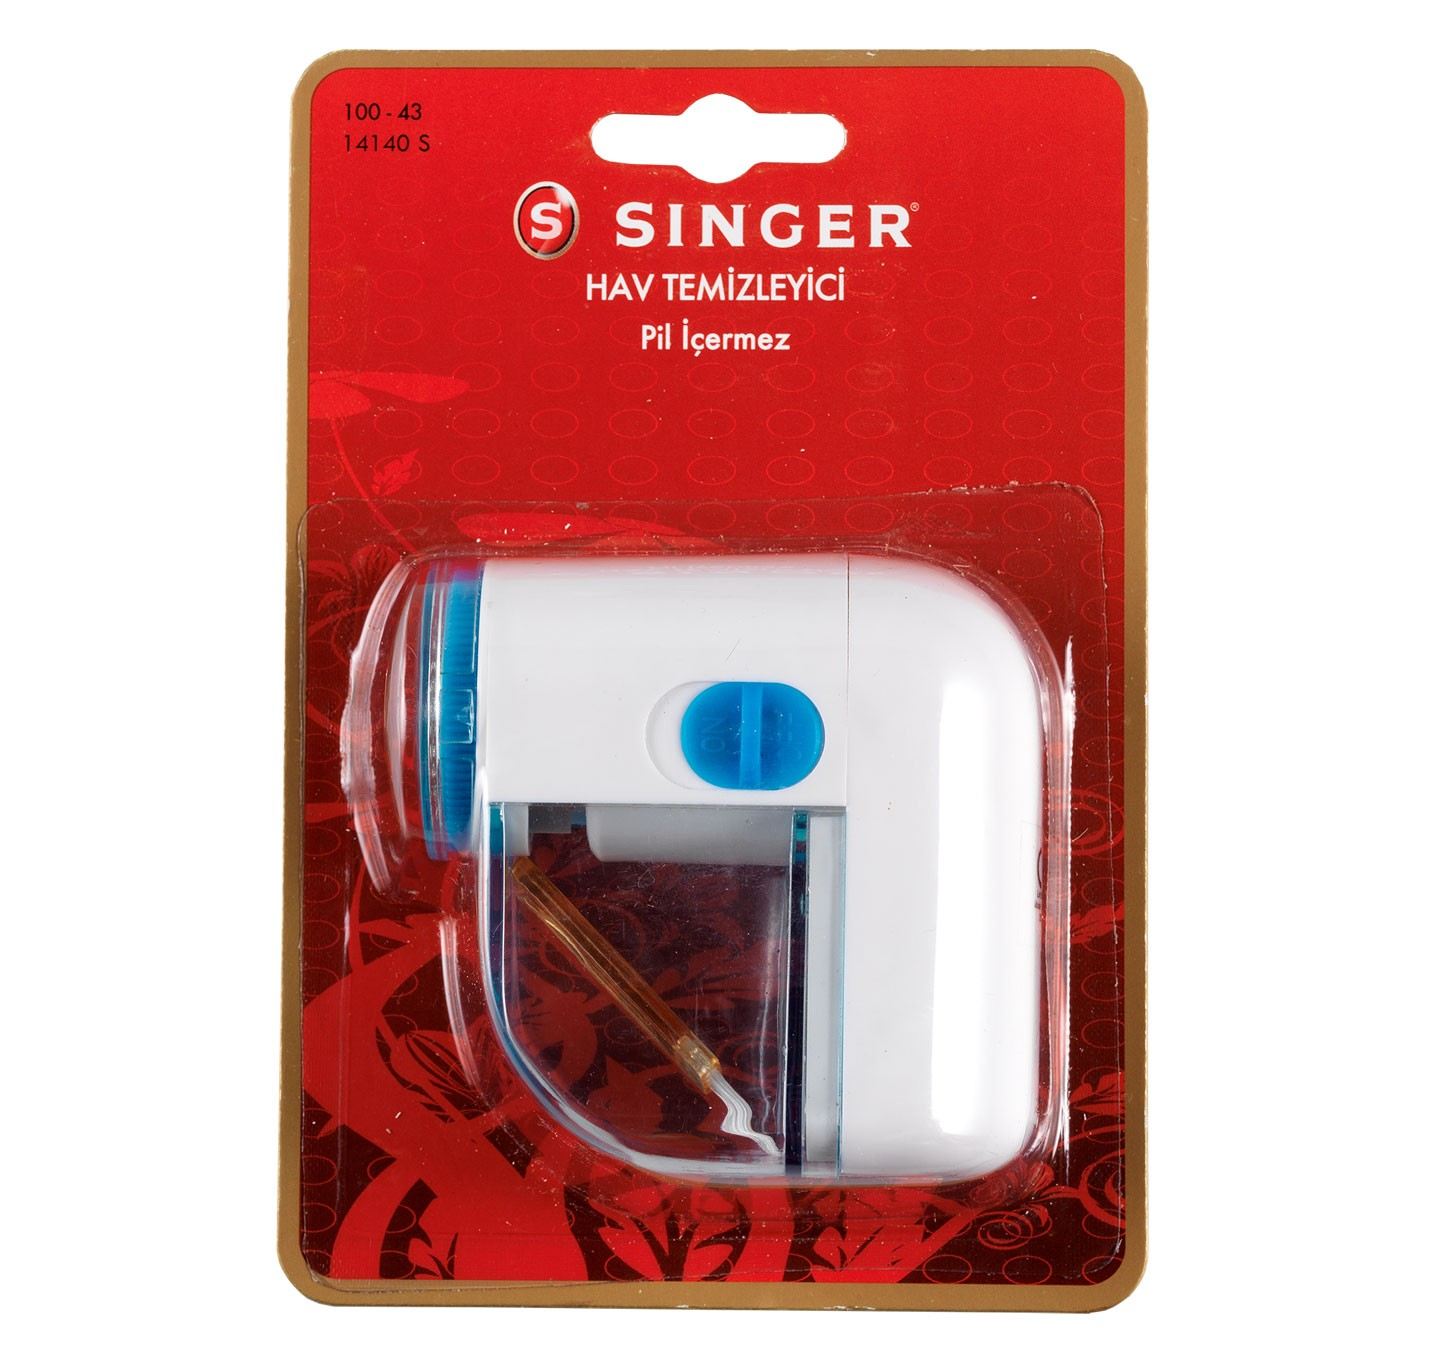 SINGER 100-43 FUZZY REMOVER